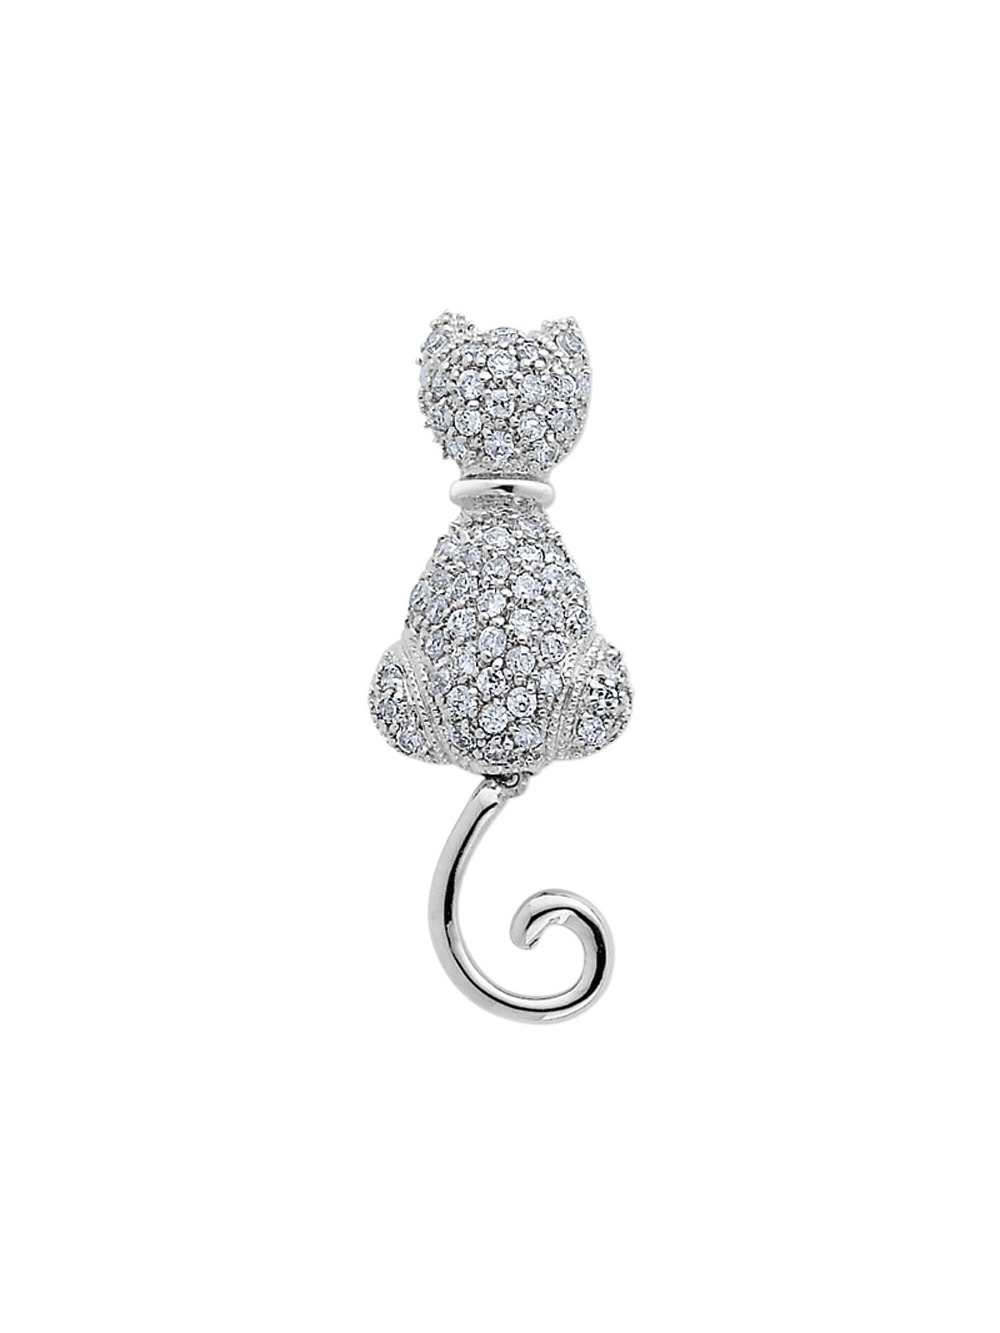 Synthetic Cubic Zirconia (CZ) (CZ) Cat Pin Brooch in Sterling Silver by Gem And Harmony